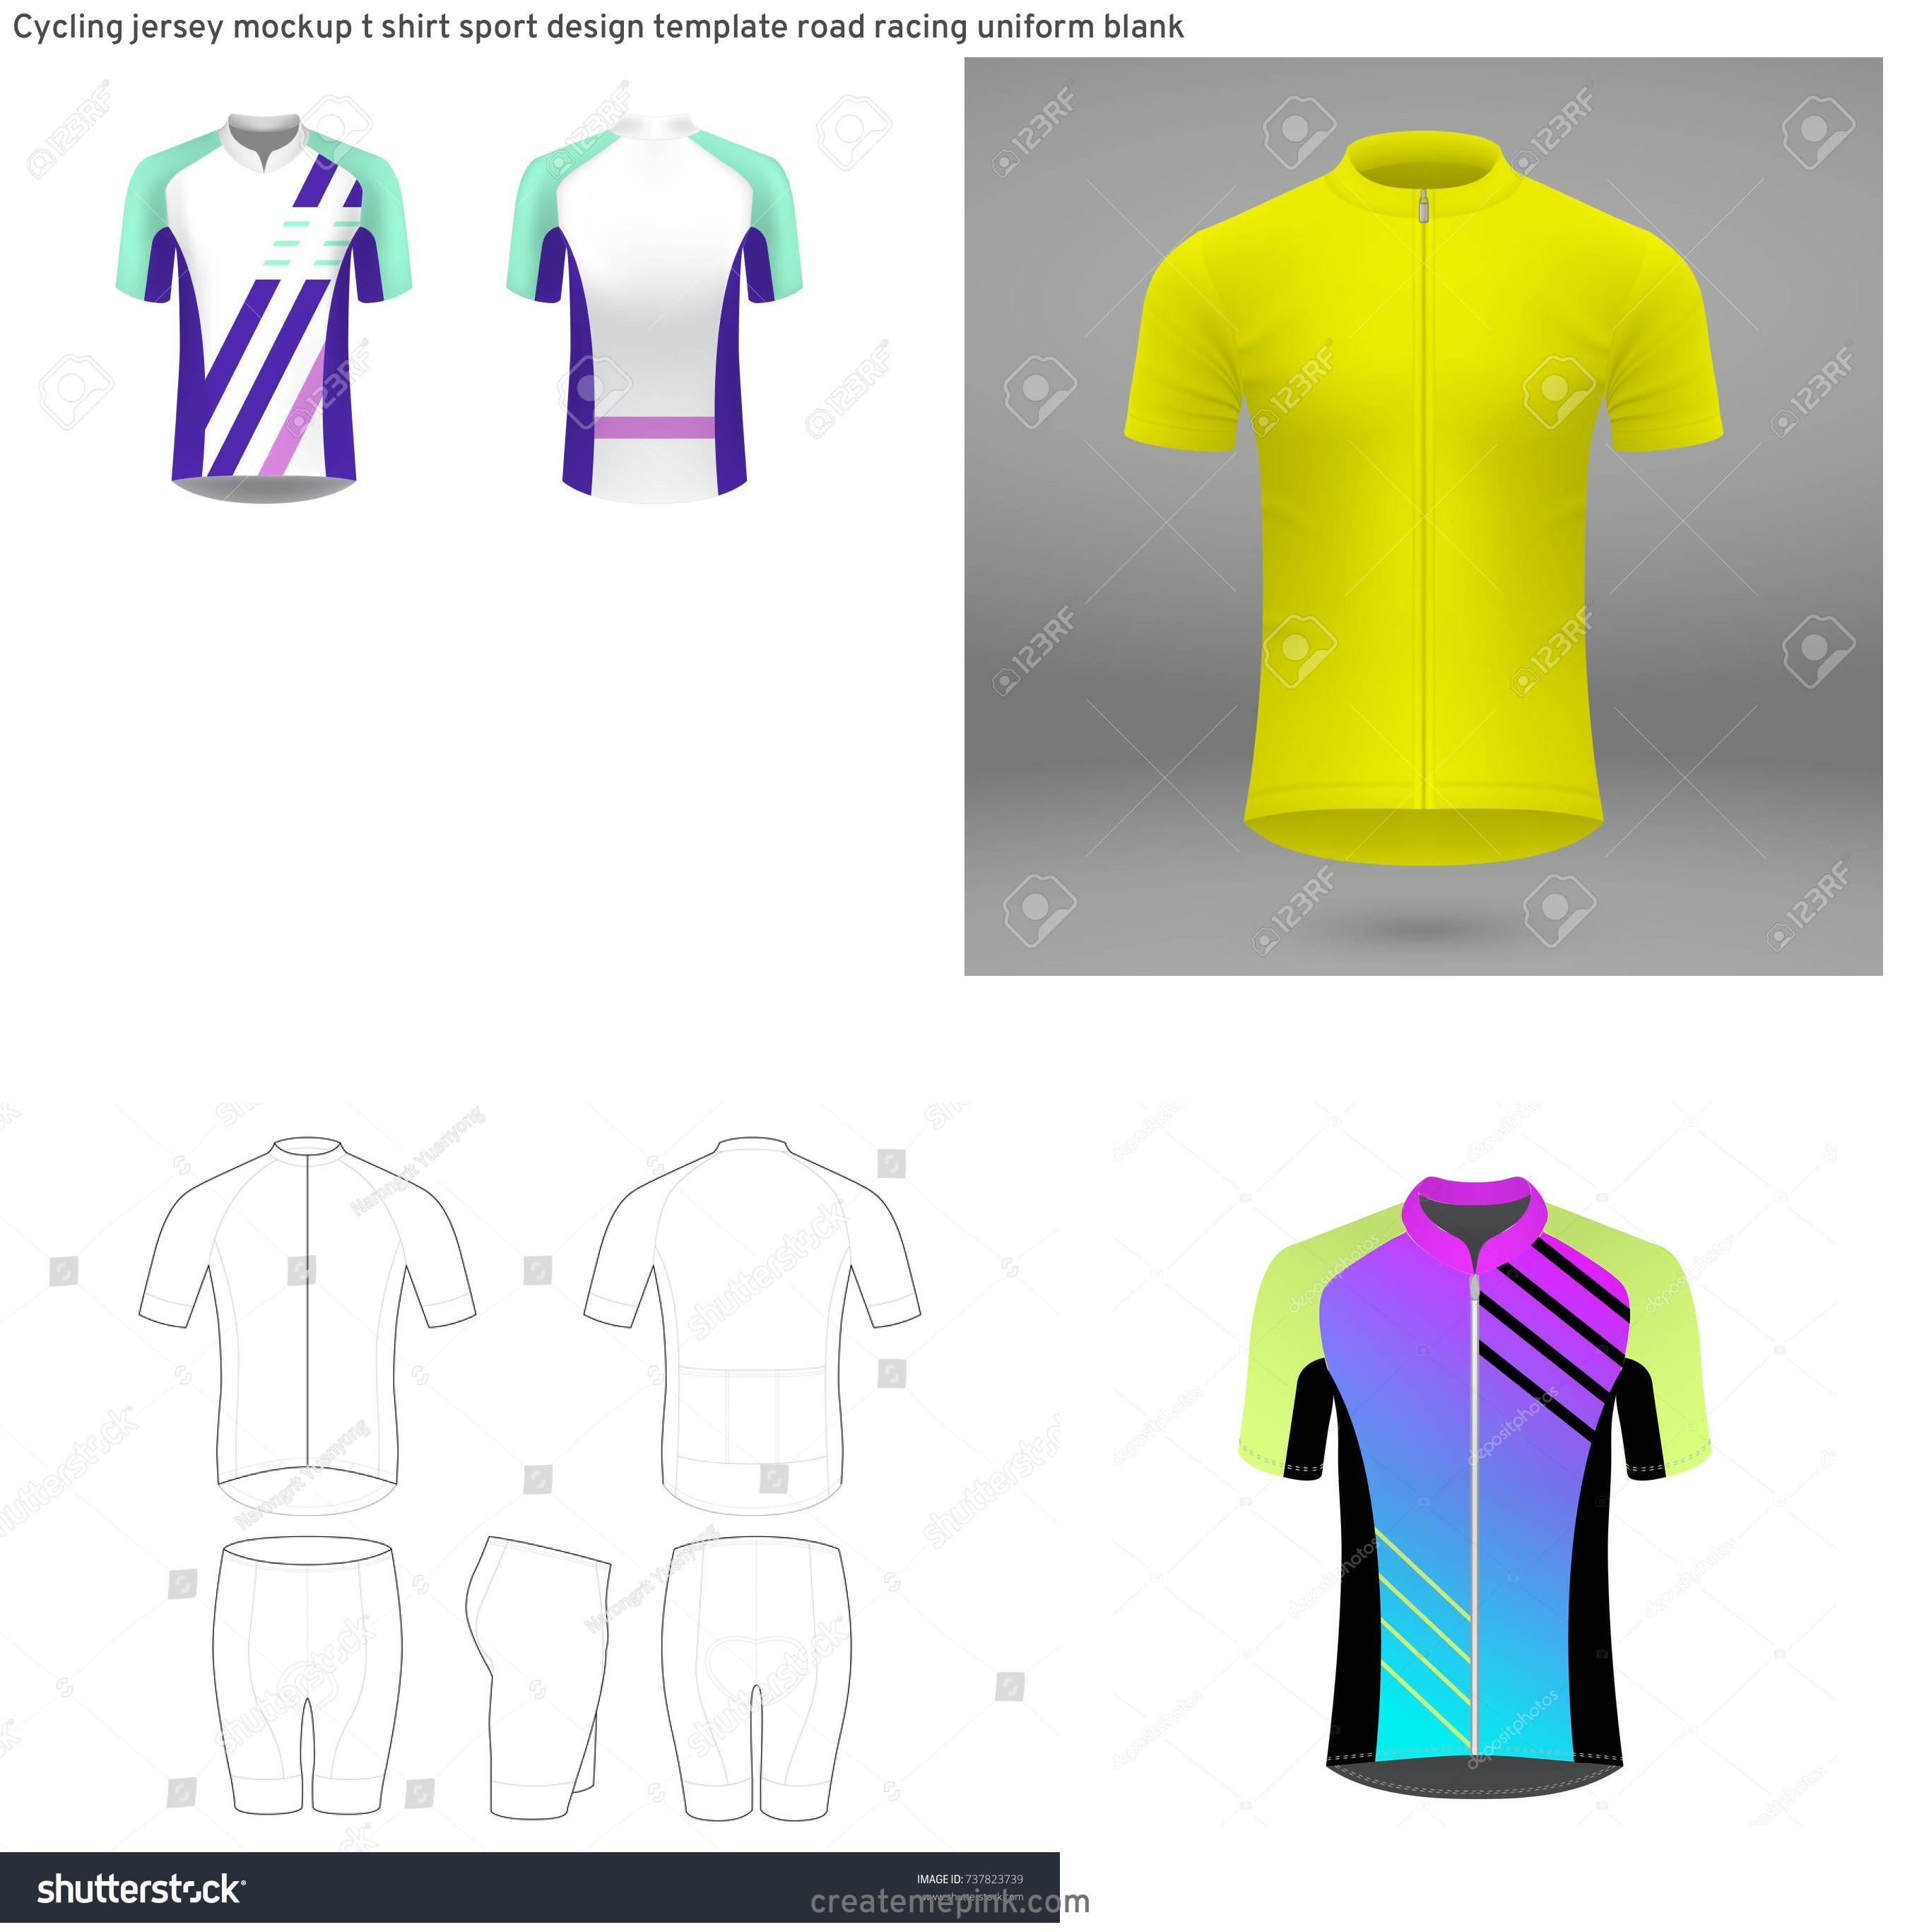 Cycling Kit Template Vector: Cycling Jersey Mockup T Shirt Sport Design Template Road Racing Uniform Blank